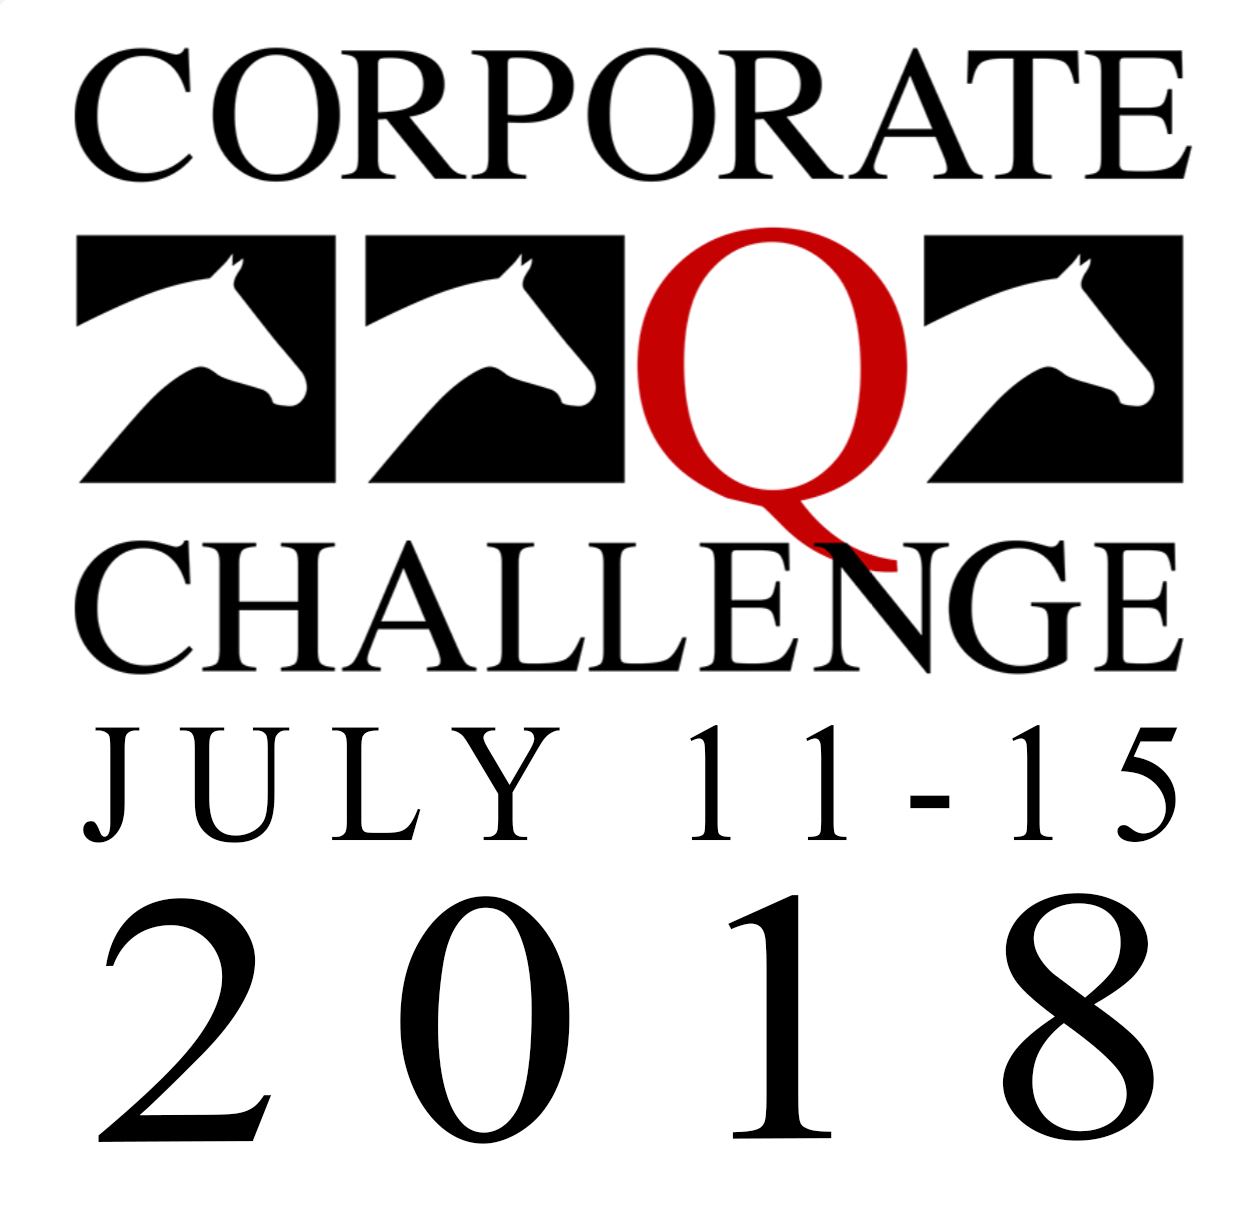 Minnesota Amateur Quarter Horse Association Corporate Challenge